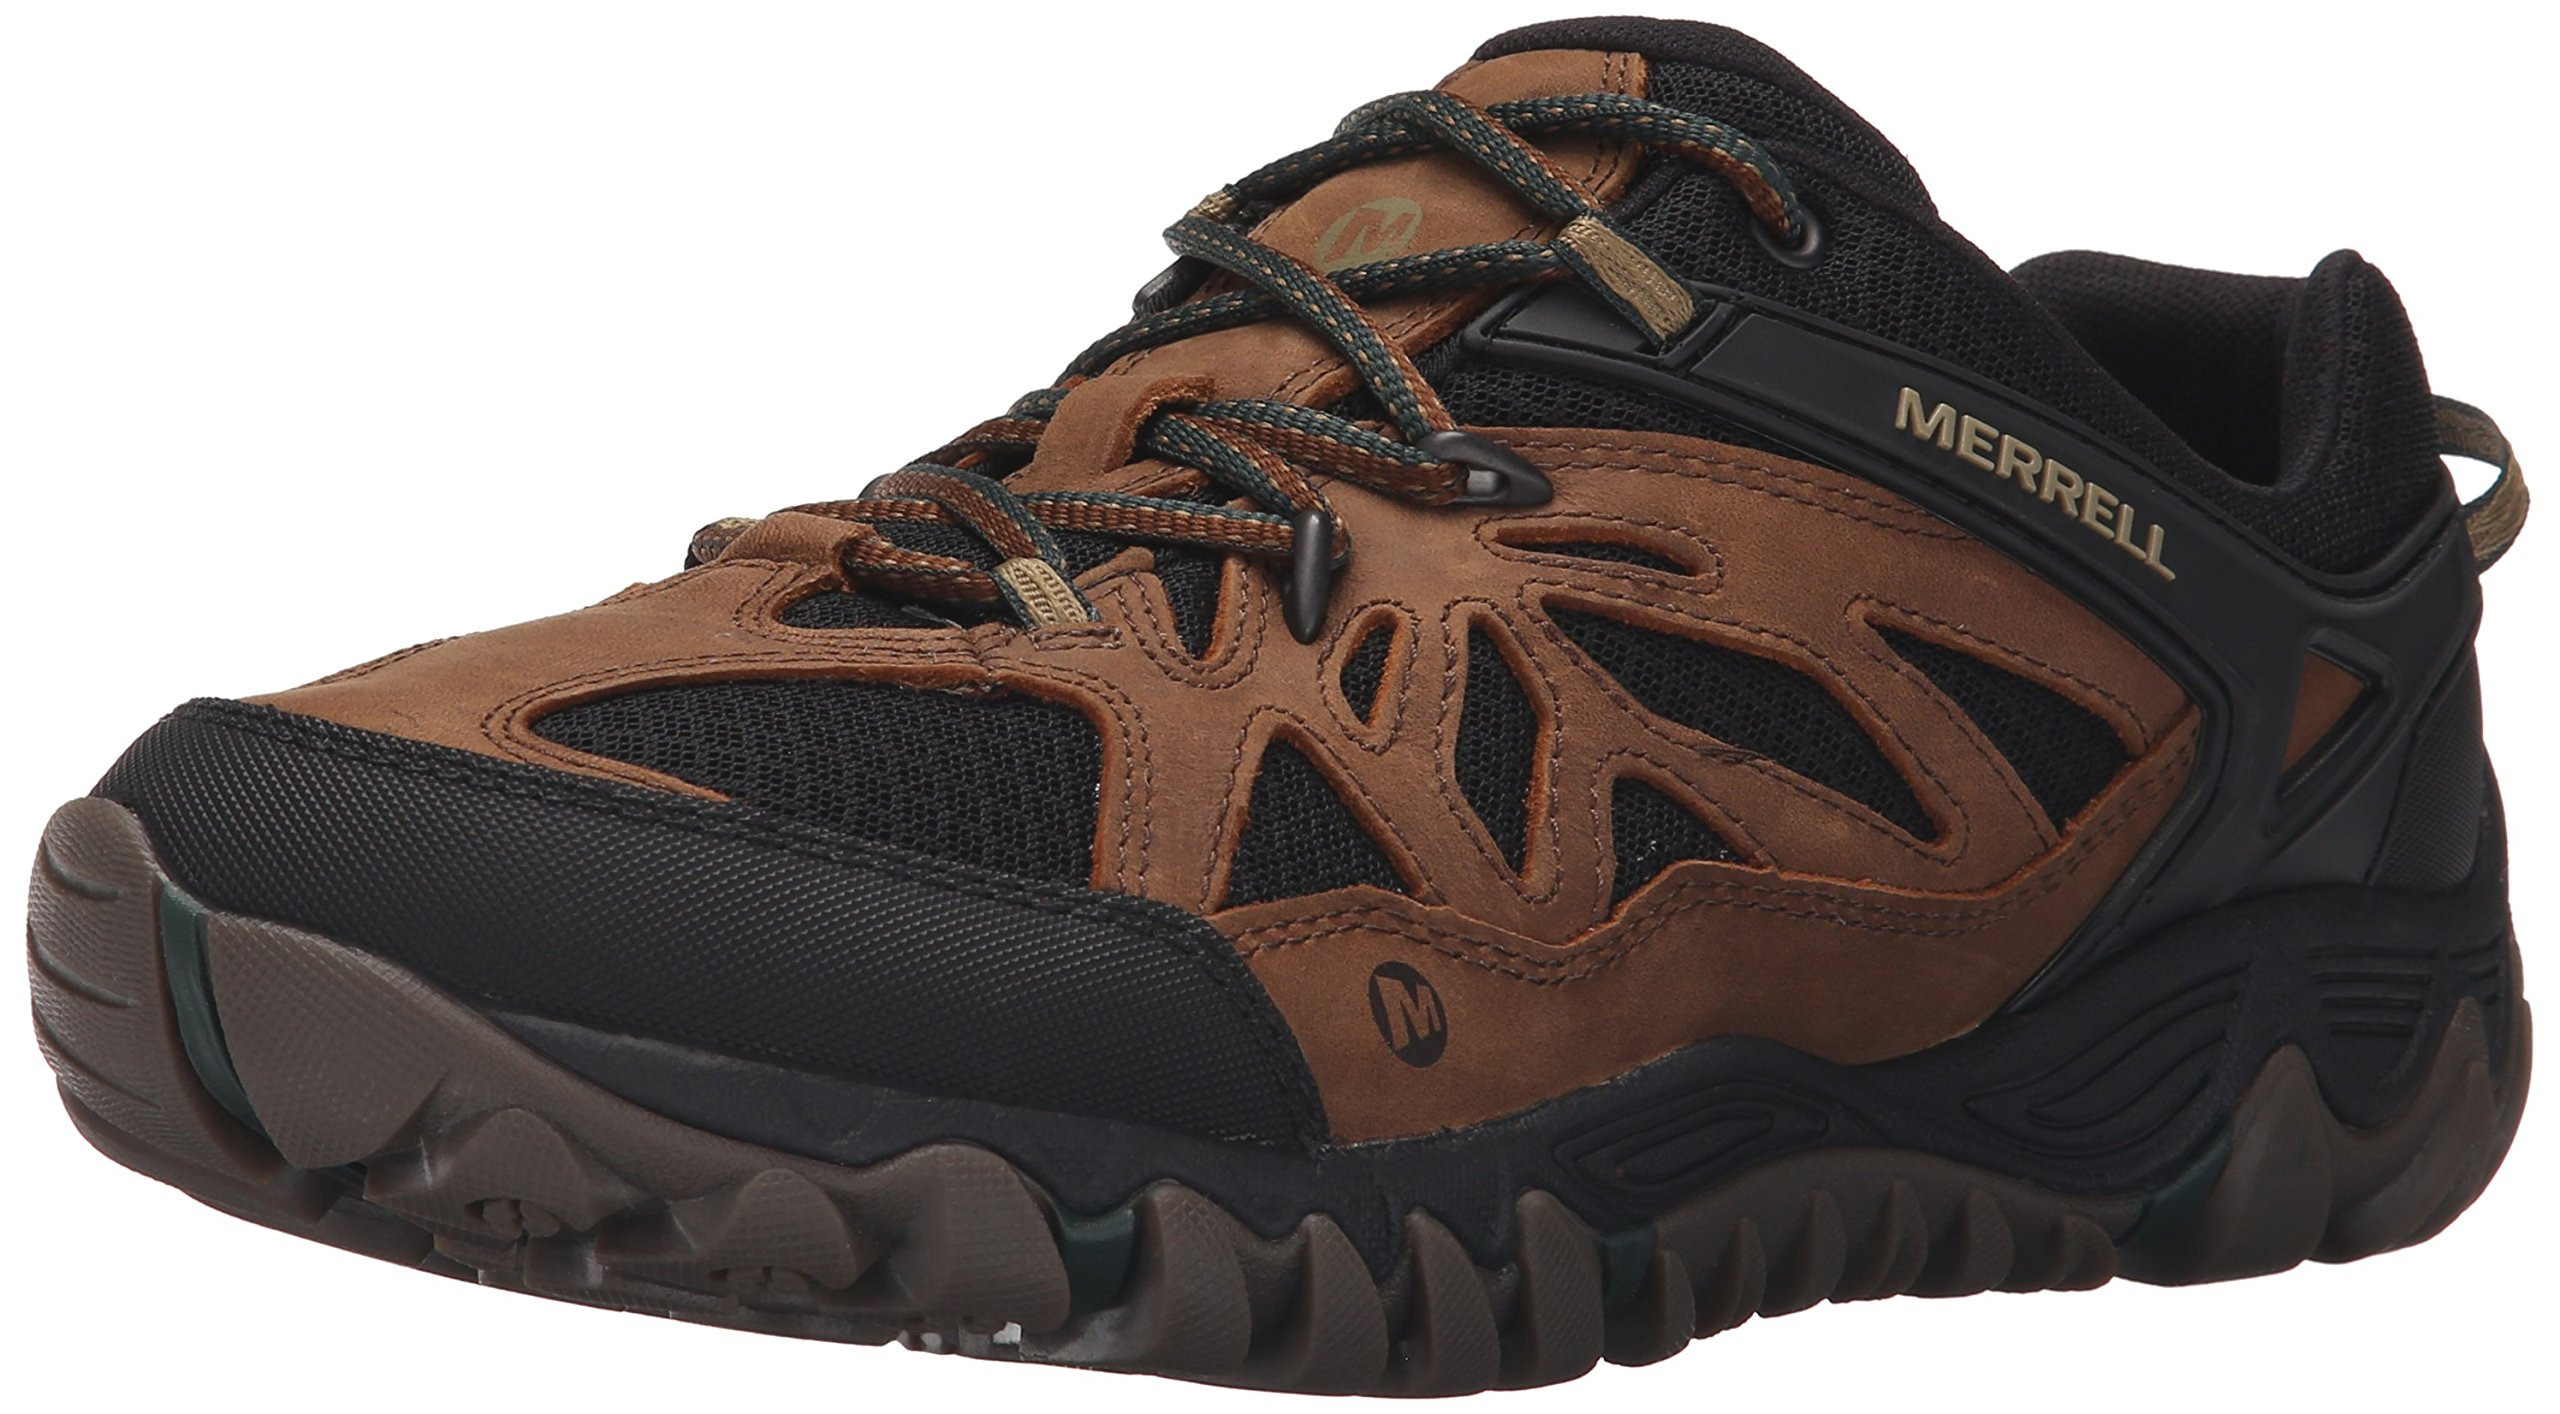 Merrell Men's All Out Blaze Vent Hiking Shoe, Tan, 9.5 M US